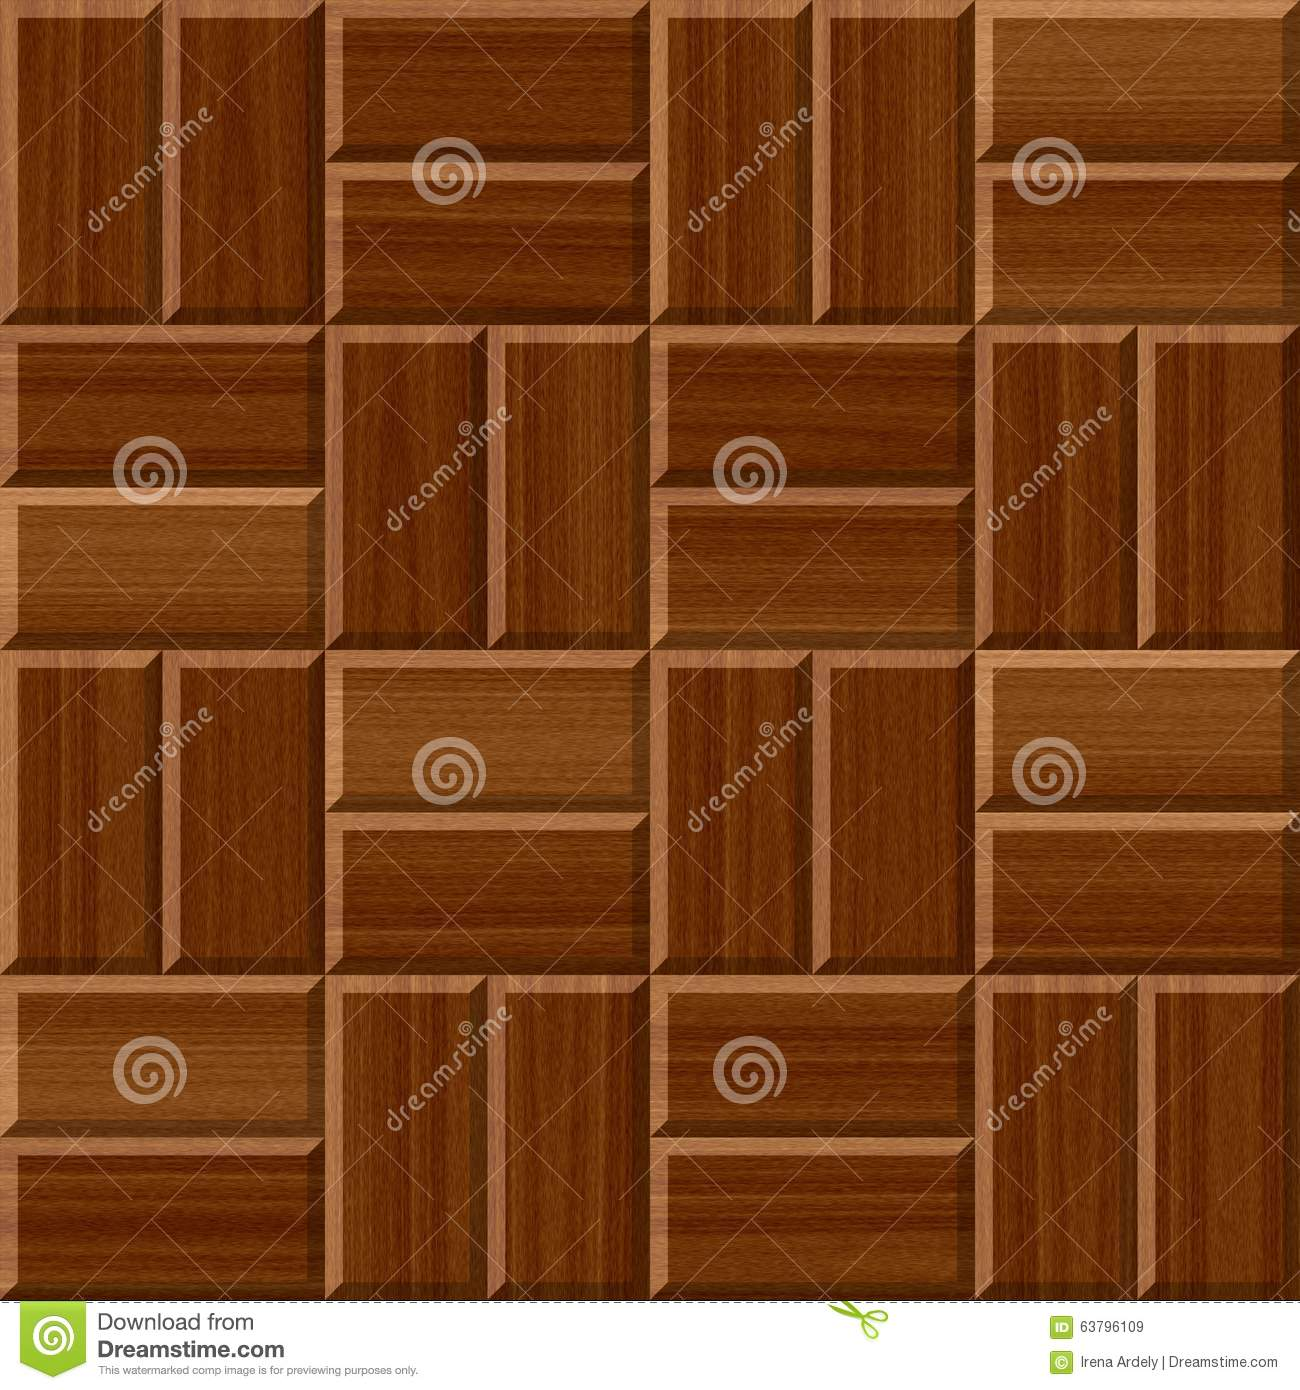 Dark Brown Wood Floor Tiles Seamless Pattern Texture